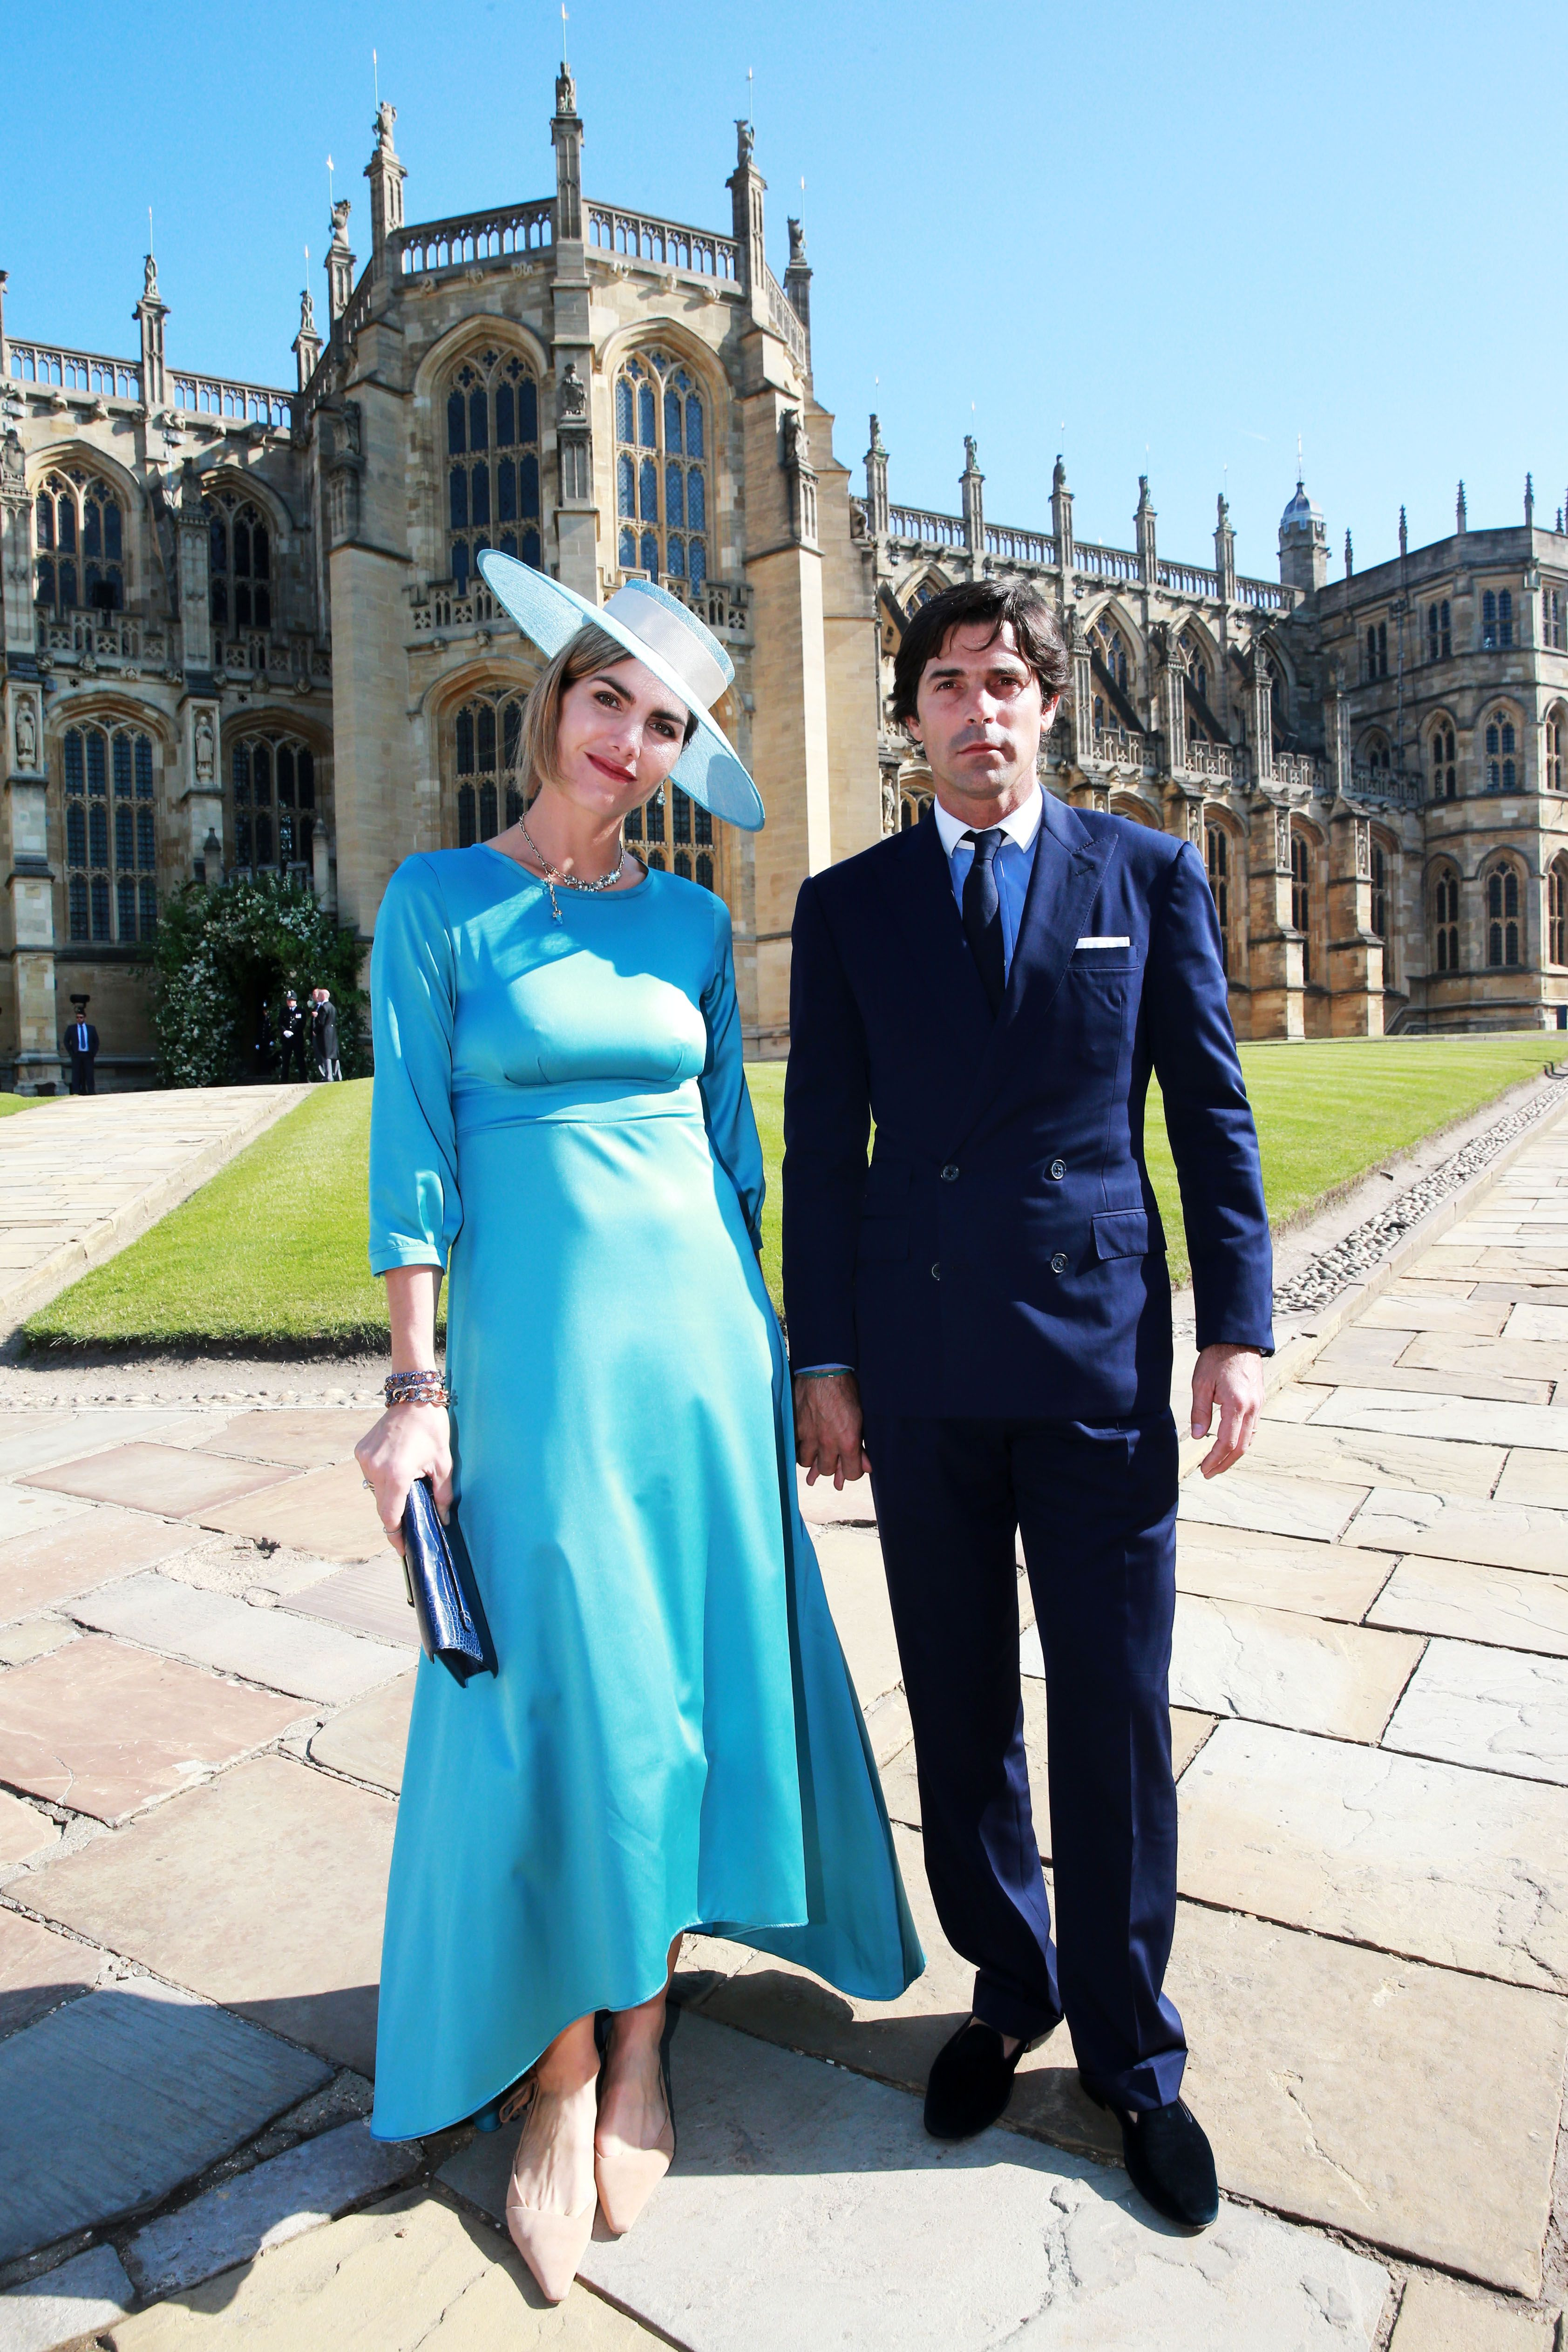 Royal Wedding 2018 Best Dressed - Celebrity and Royal Fashion at ...